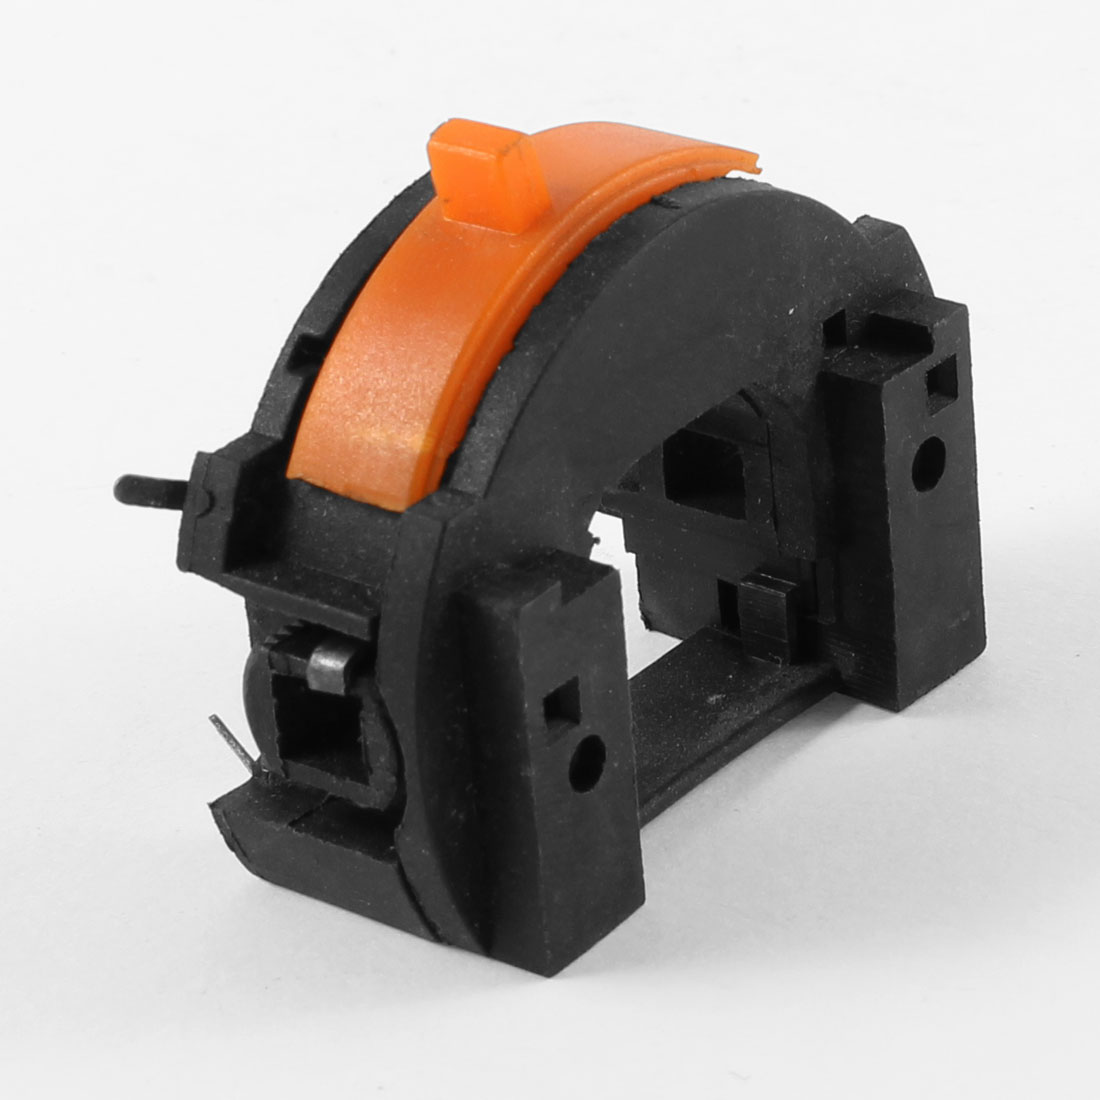 Replacement Plastic Insulating Housing Slide Switch for Electric Tool